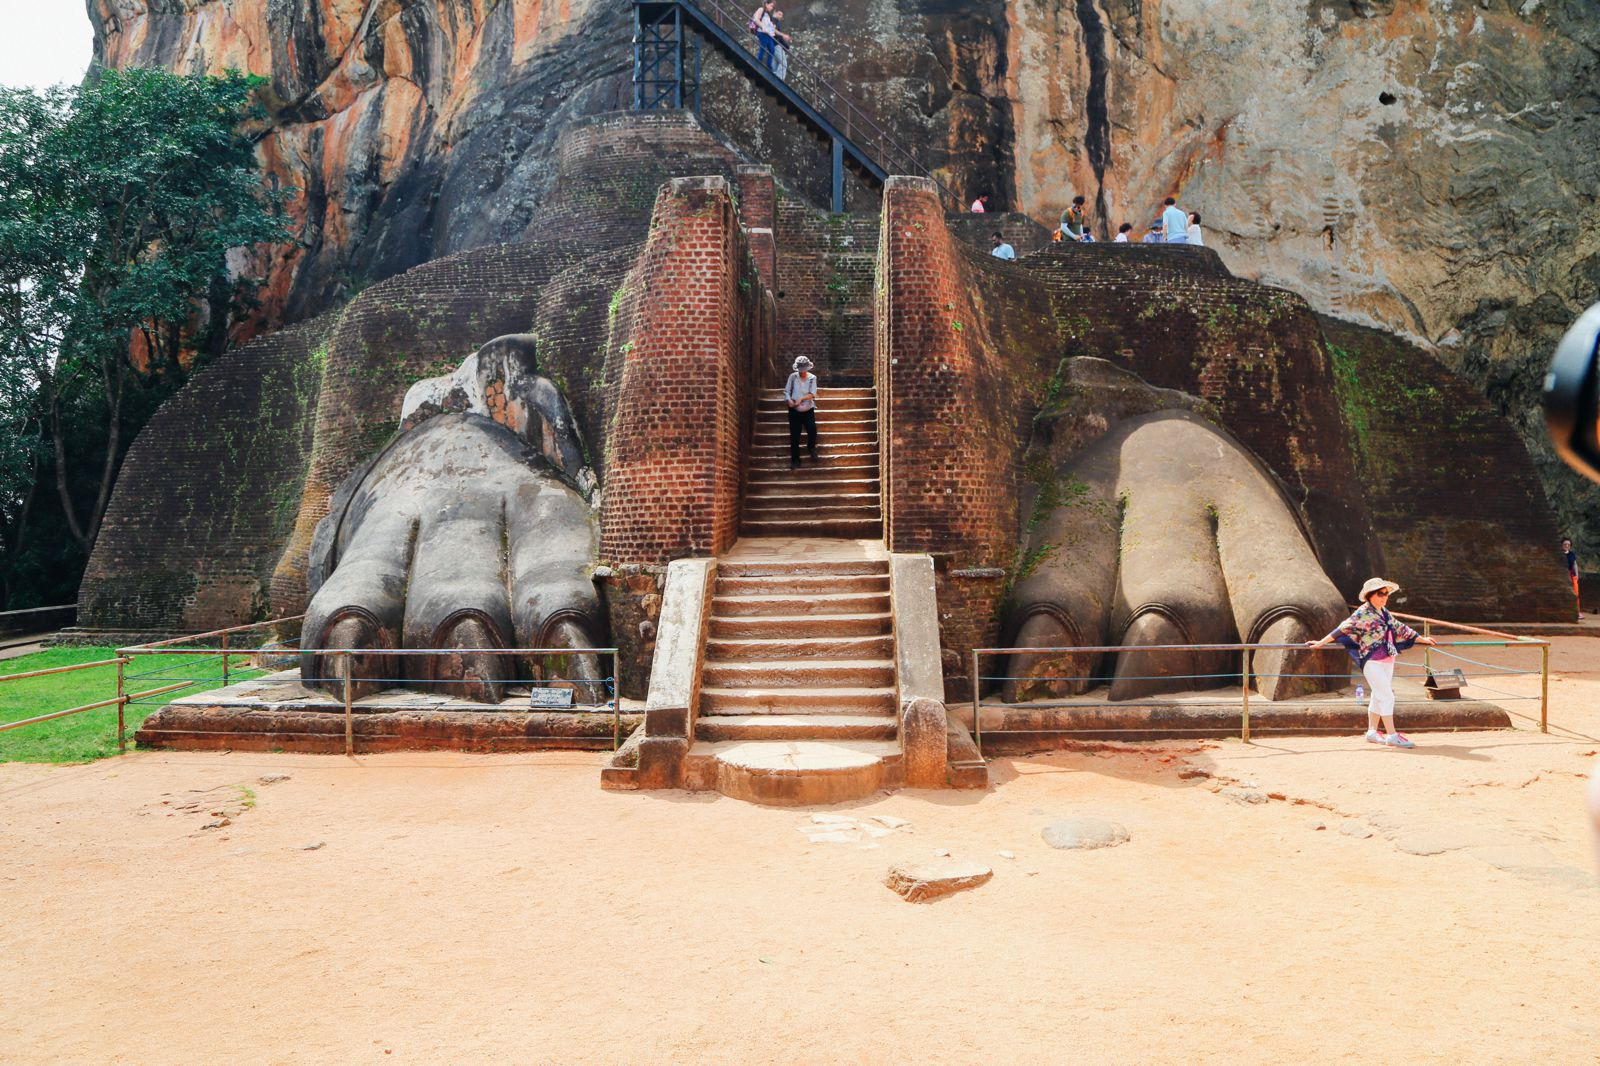 The Complete Guide To Climbing Sri Lanka's UNESCO World Heritage Site Of Sigiriya - Lion Rock (27)